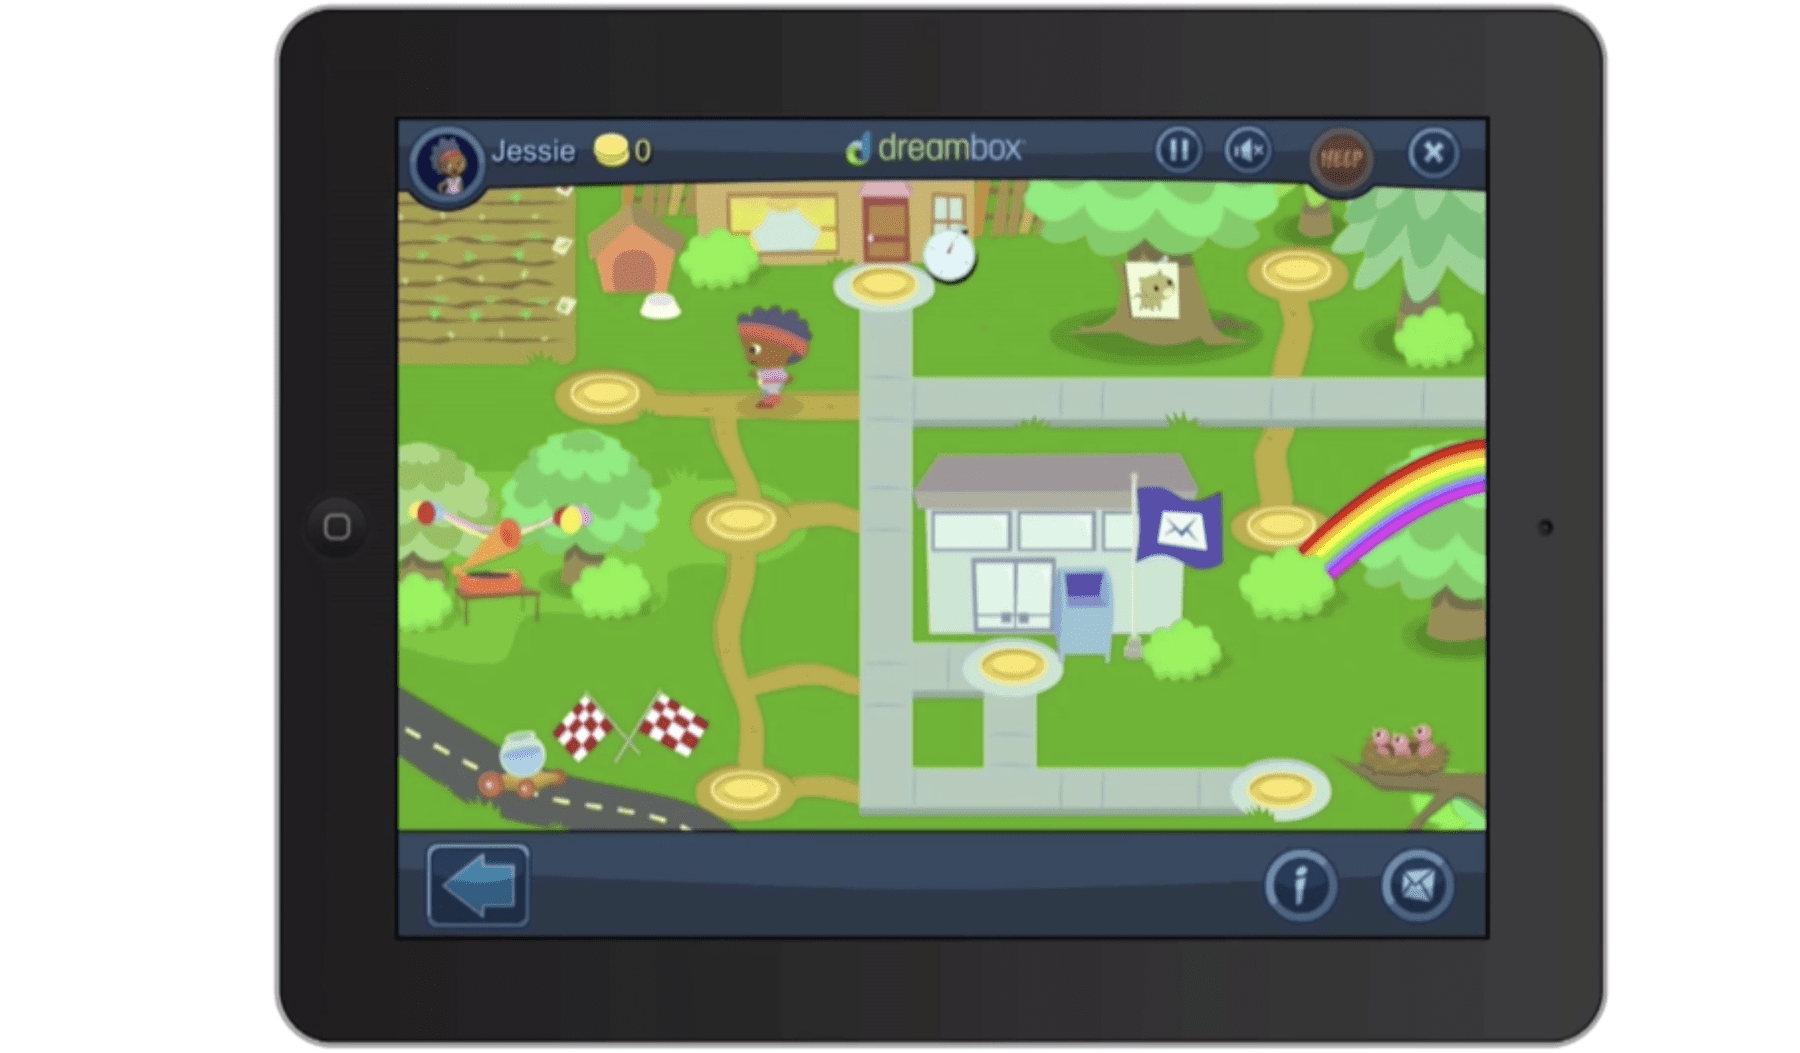 DreamBox: adaptive learning in a game-like environment for grades K-8